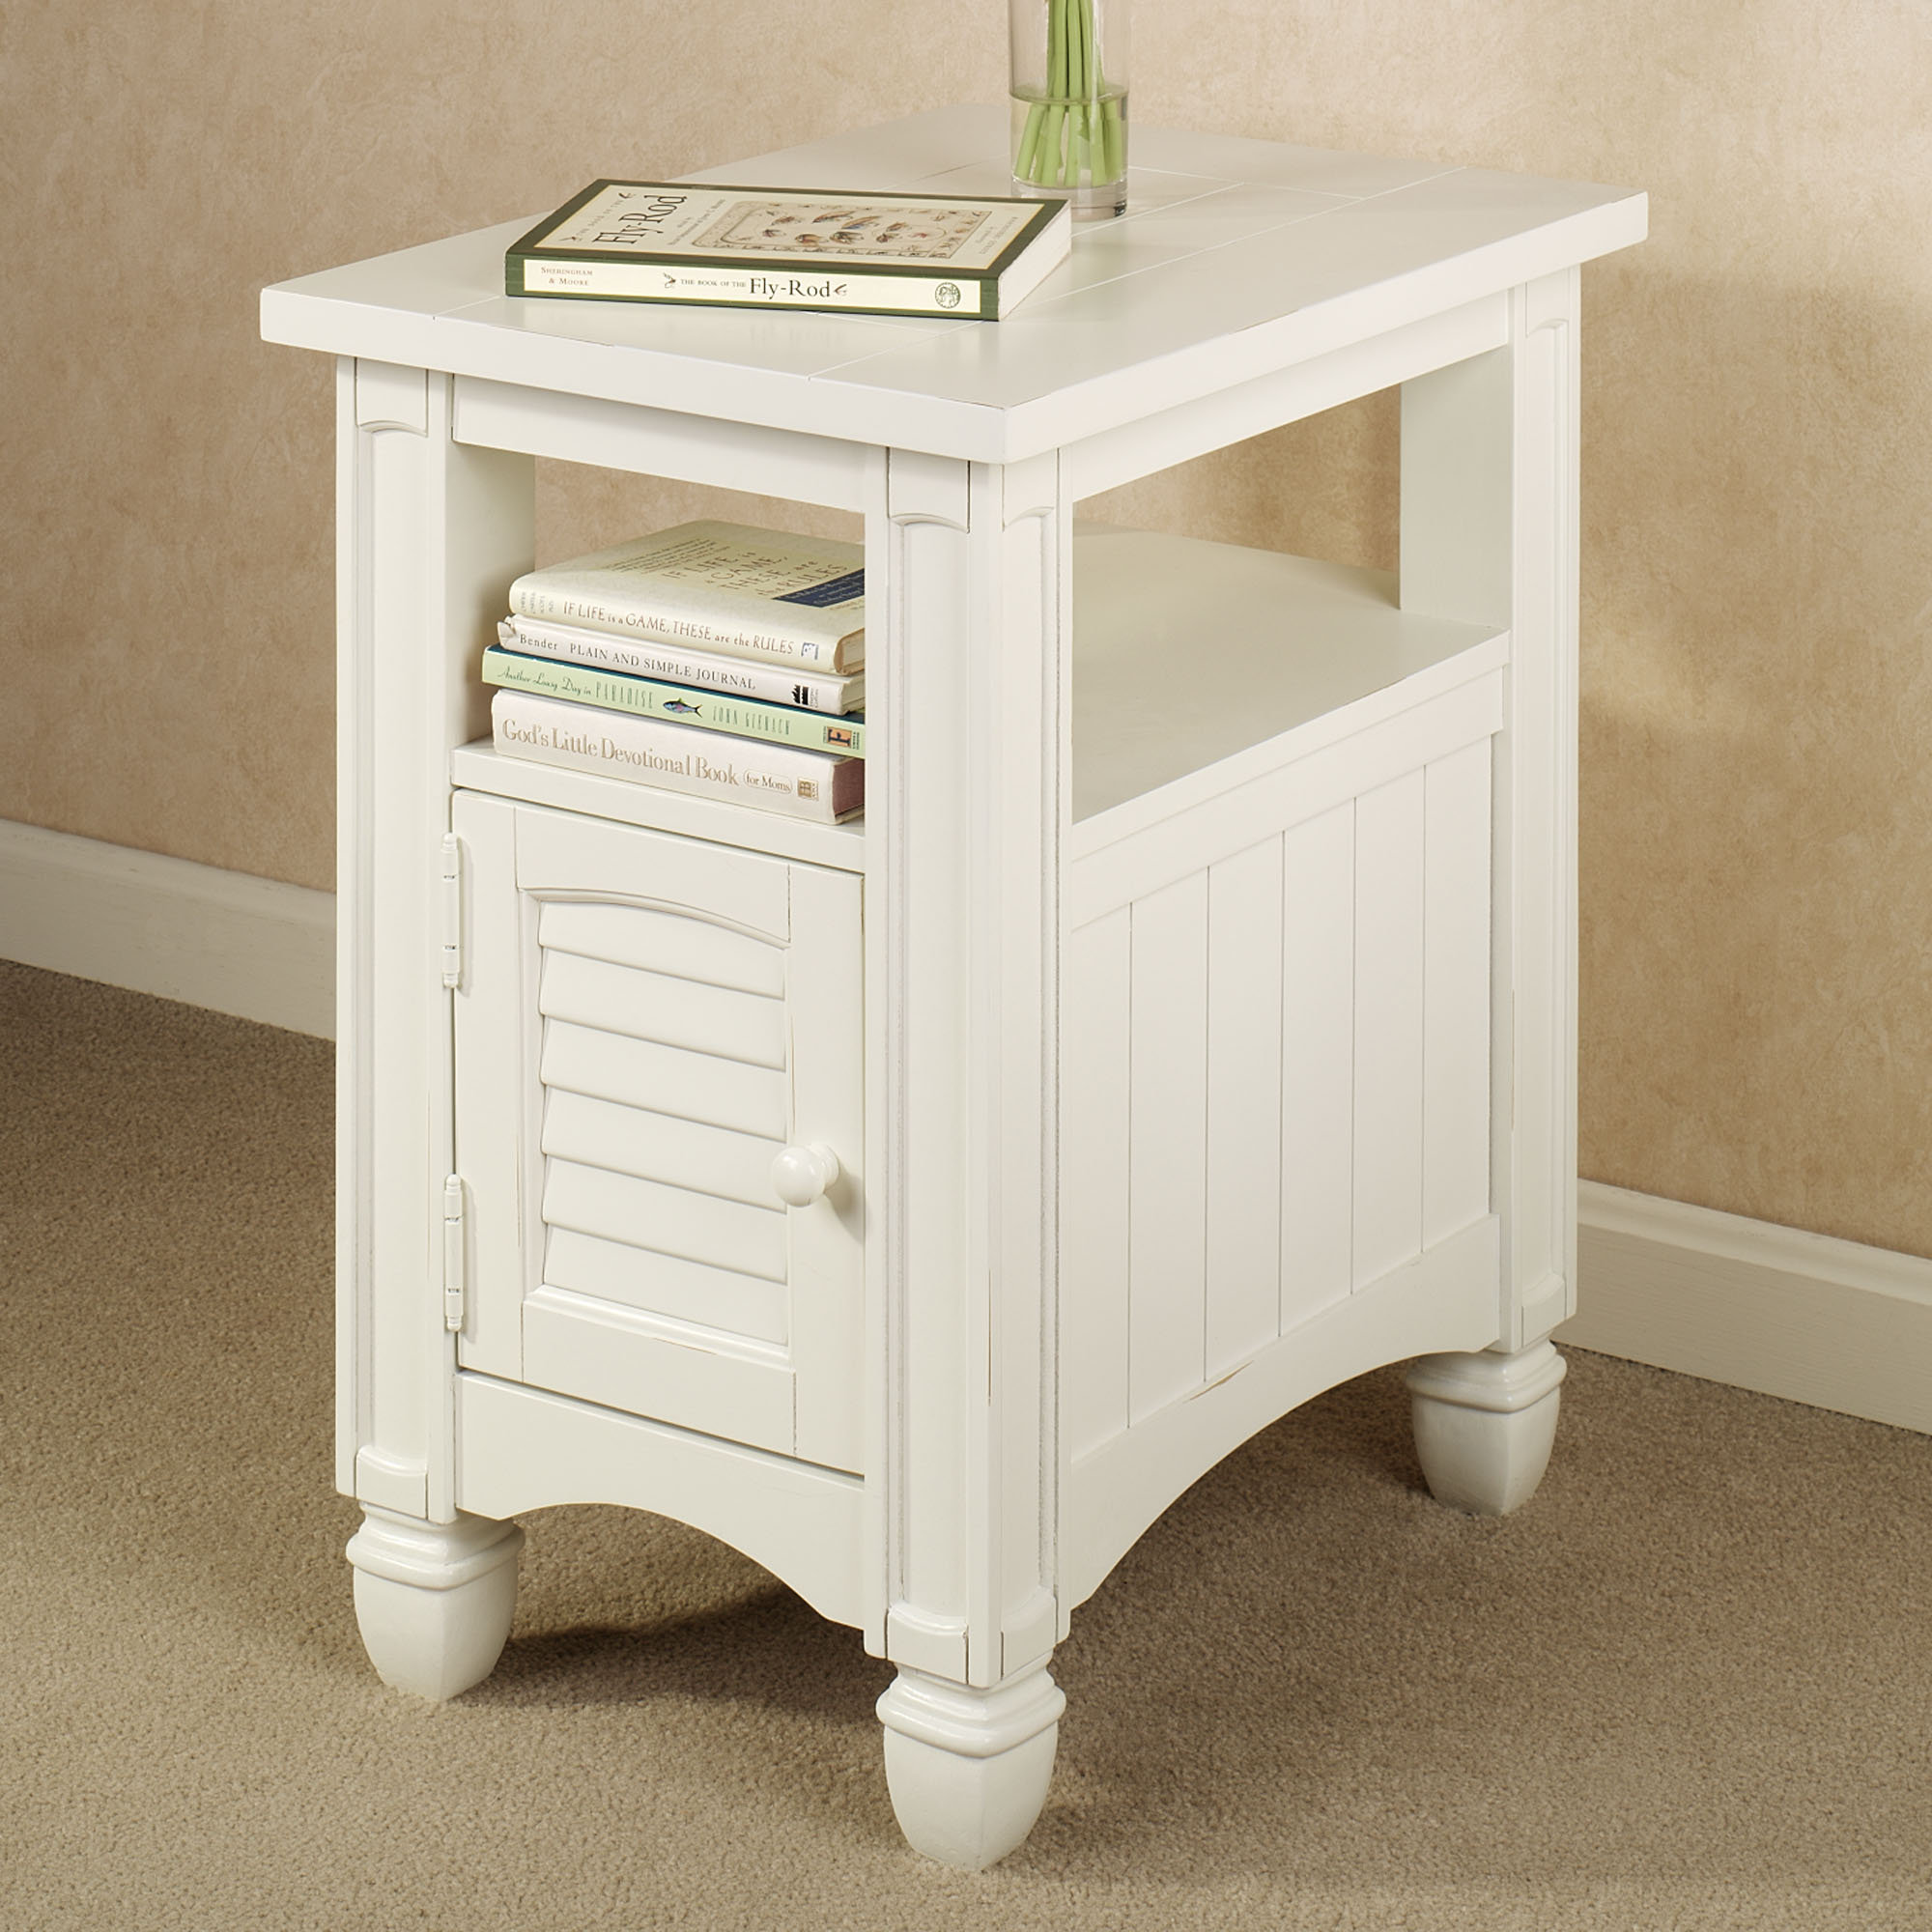 fresh white end table with drawer margate threshold target storage mclaughlin dark wood top basket magazine rack charging station glass door accent small antique marble wooden